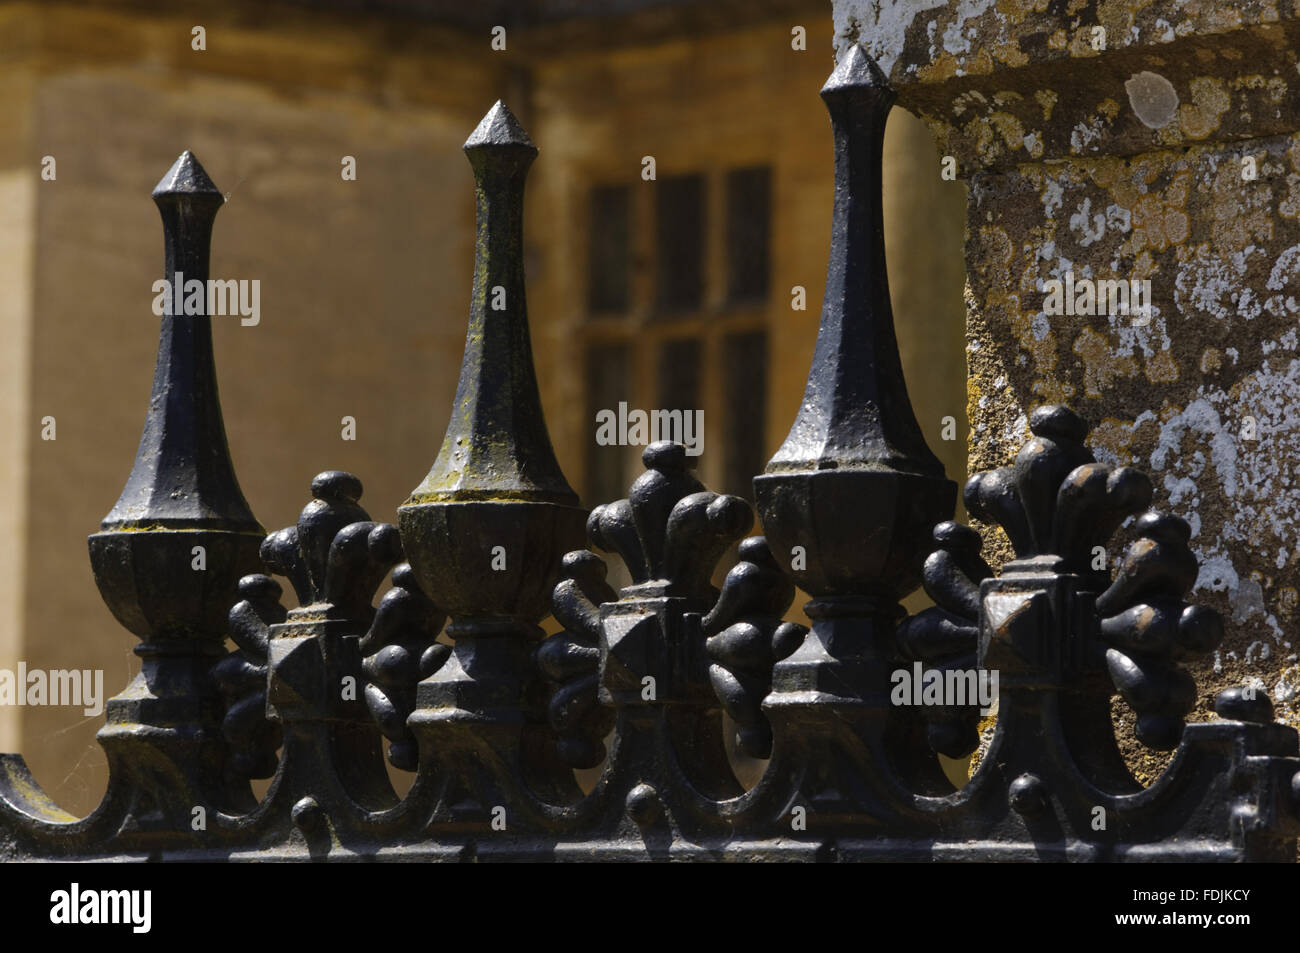 Close view of the metalwork on the gate at Montacute House, Somerset. - Stock Image